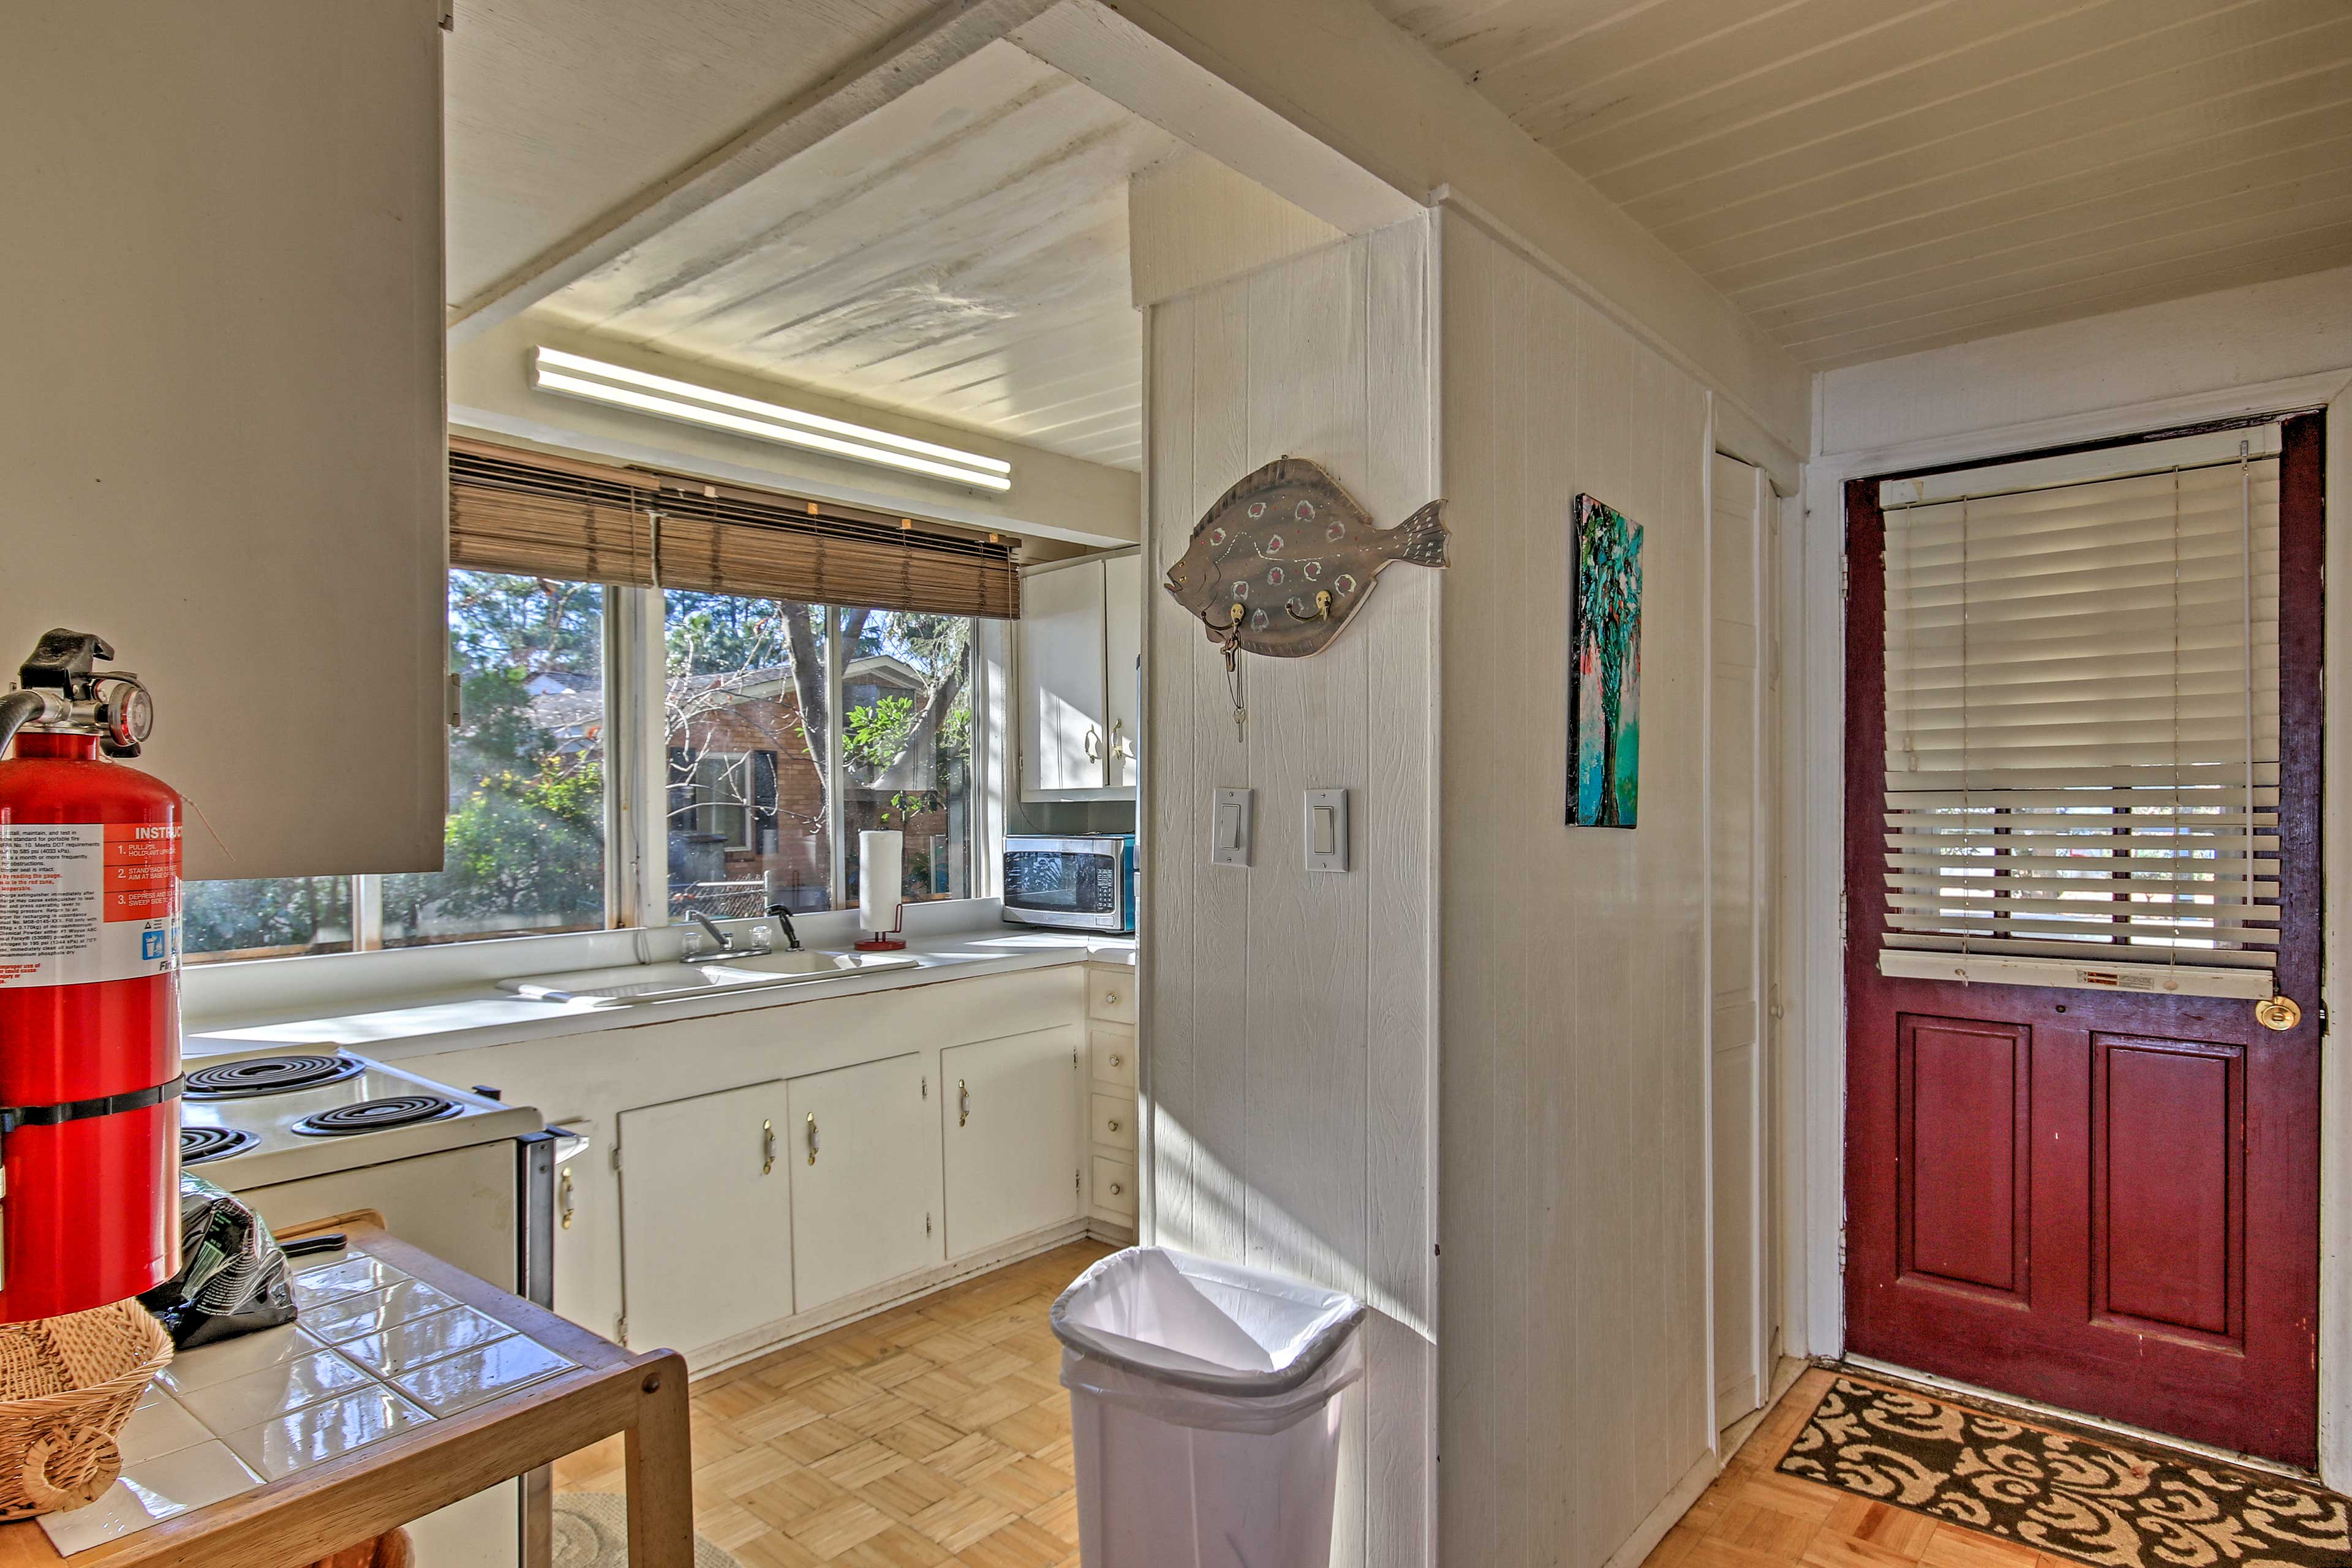 This vacation rental features a well-equipped kitchen with cooking basics.